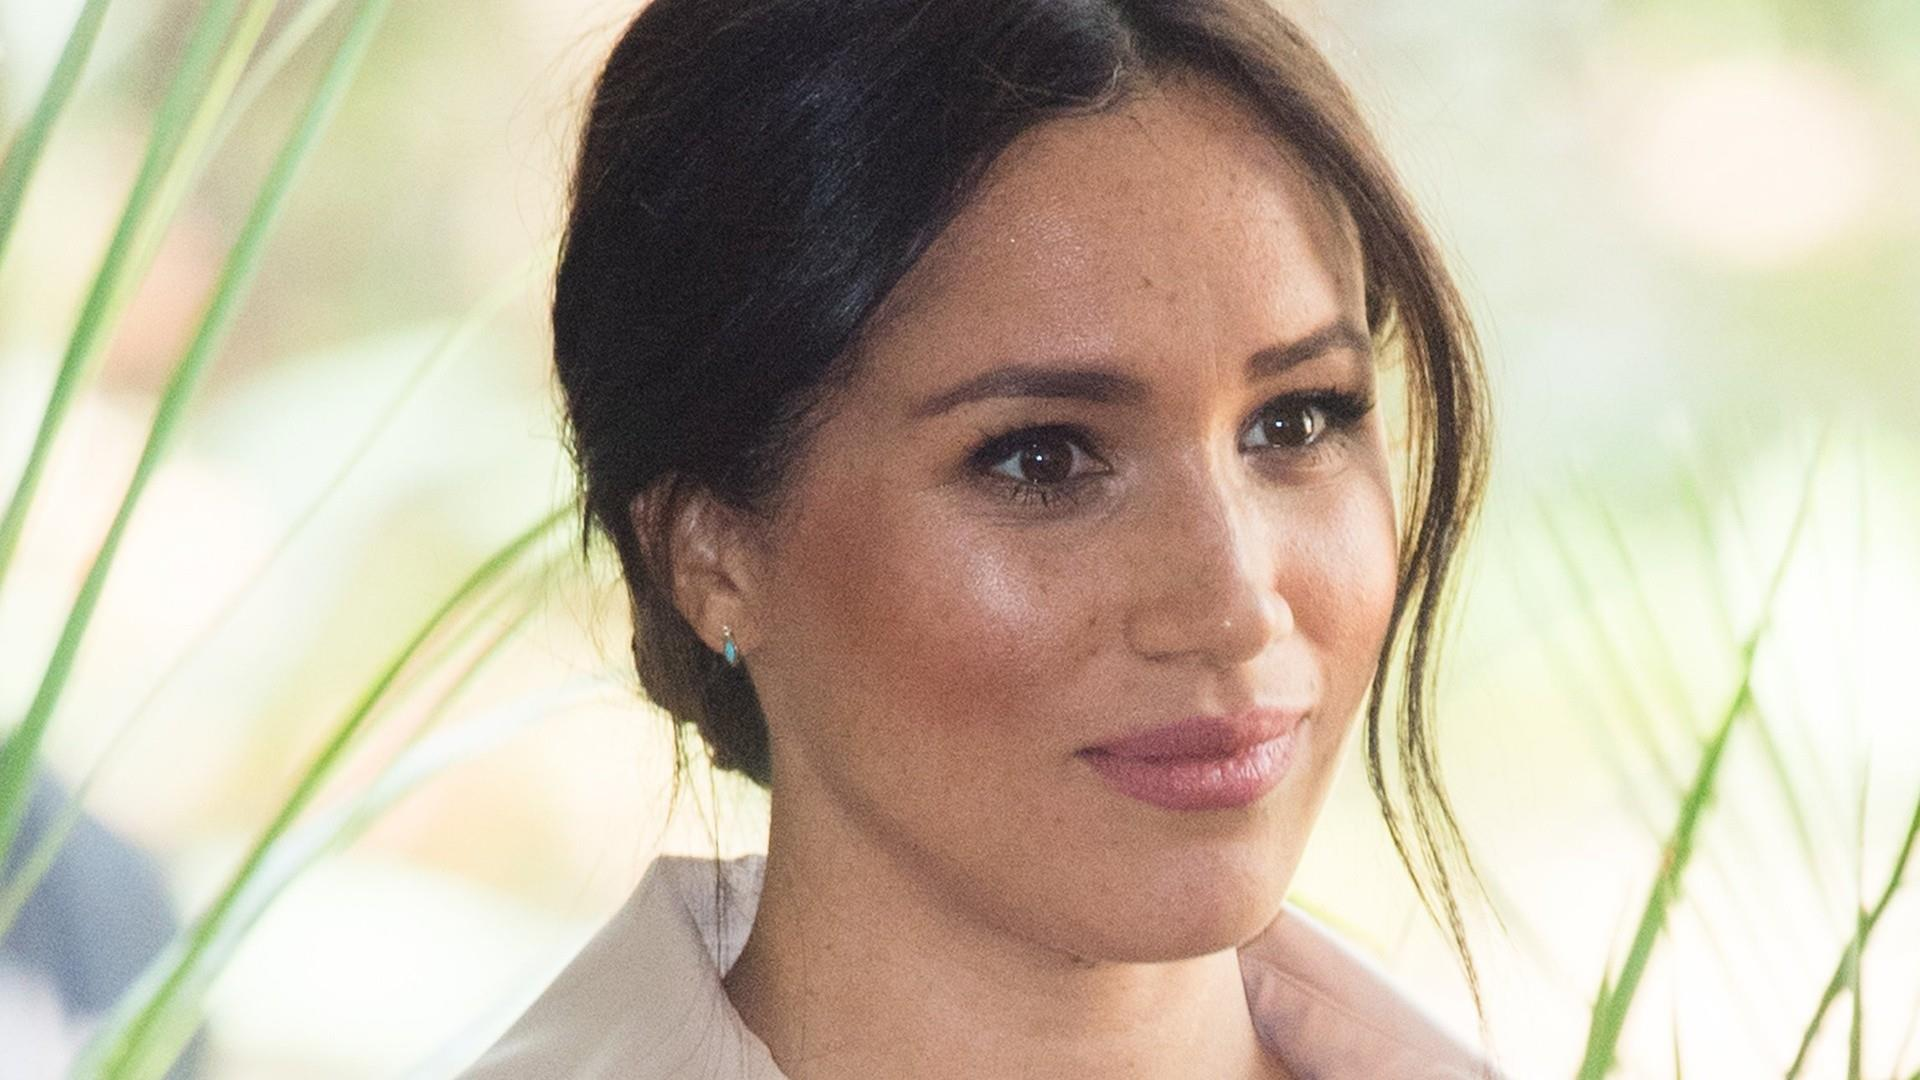 Meghan Markle opens up about vulnerabilities as a new mom